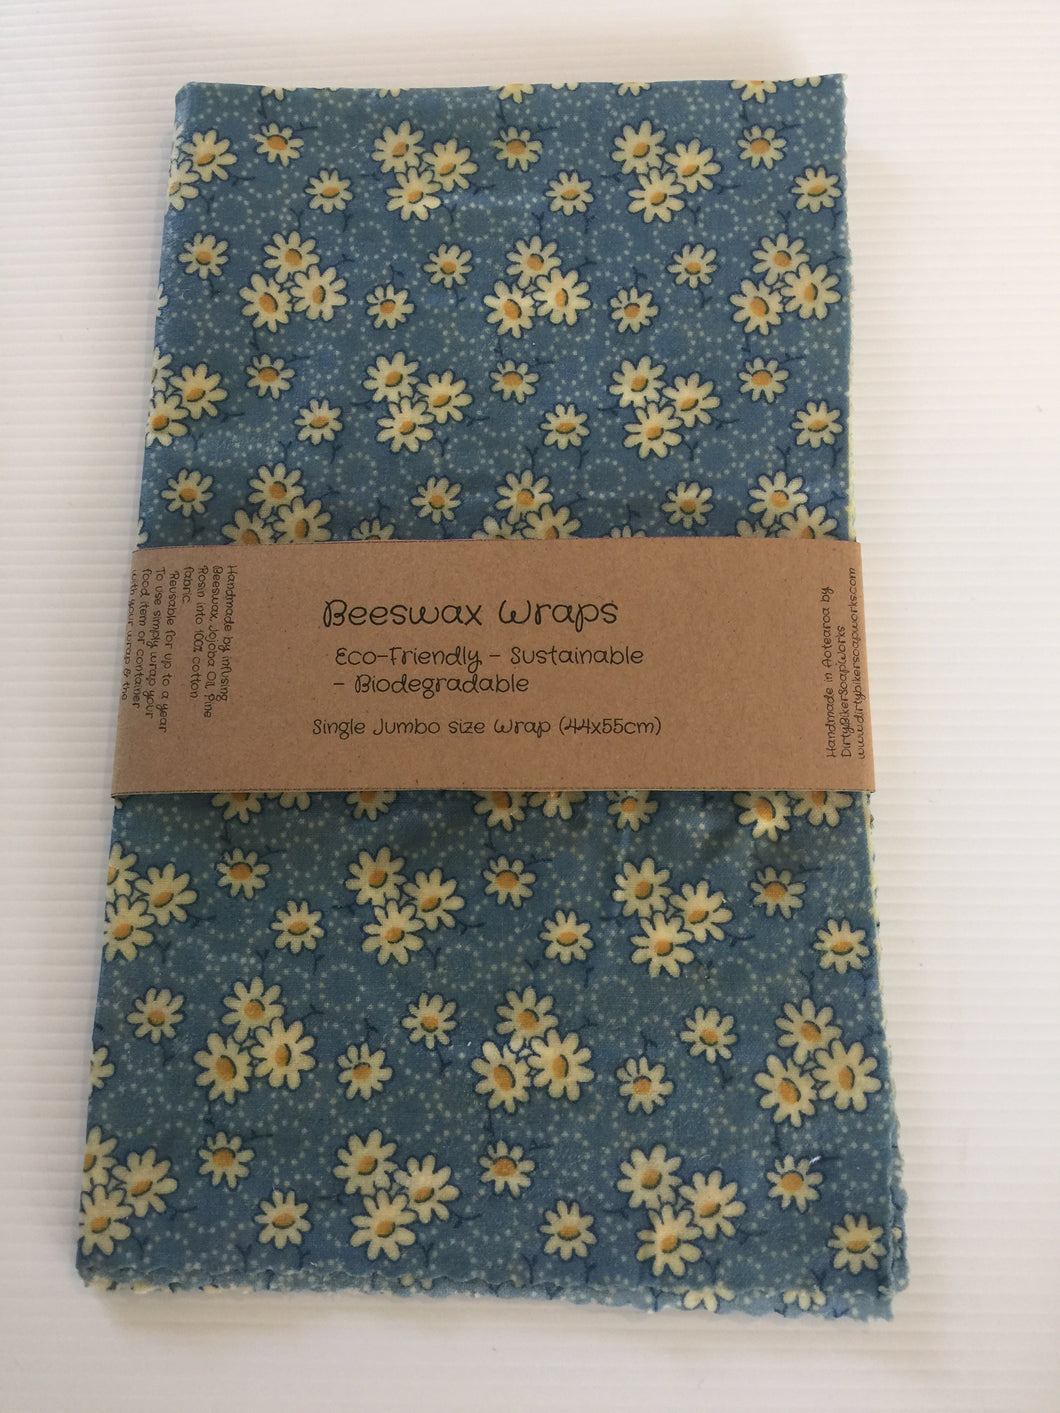 Beeswax Wraps Jumbo Size ( The Yellow Flower Jumbo )